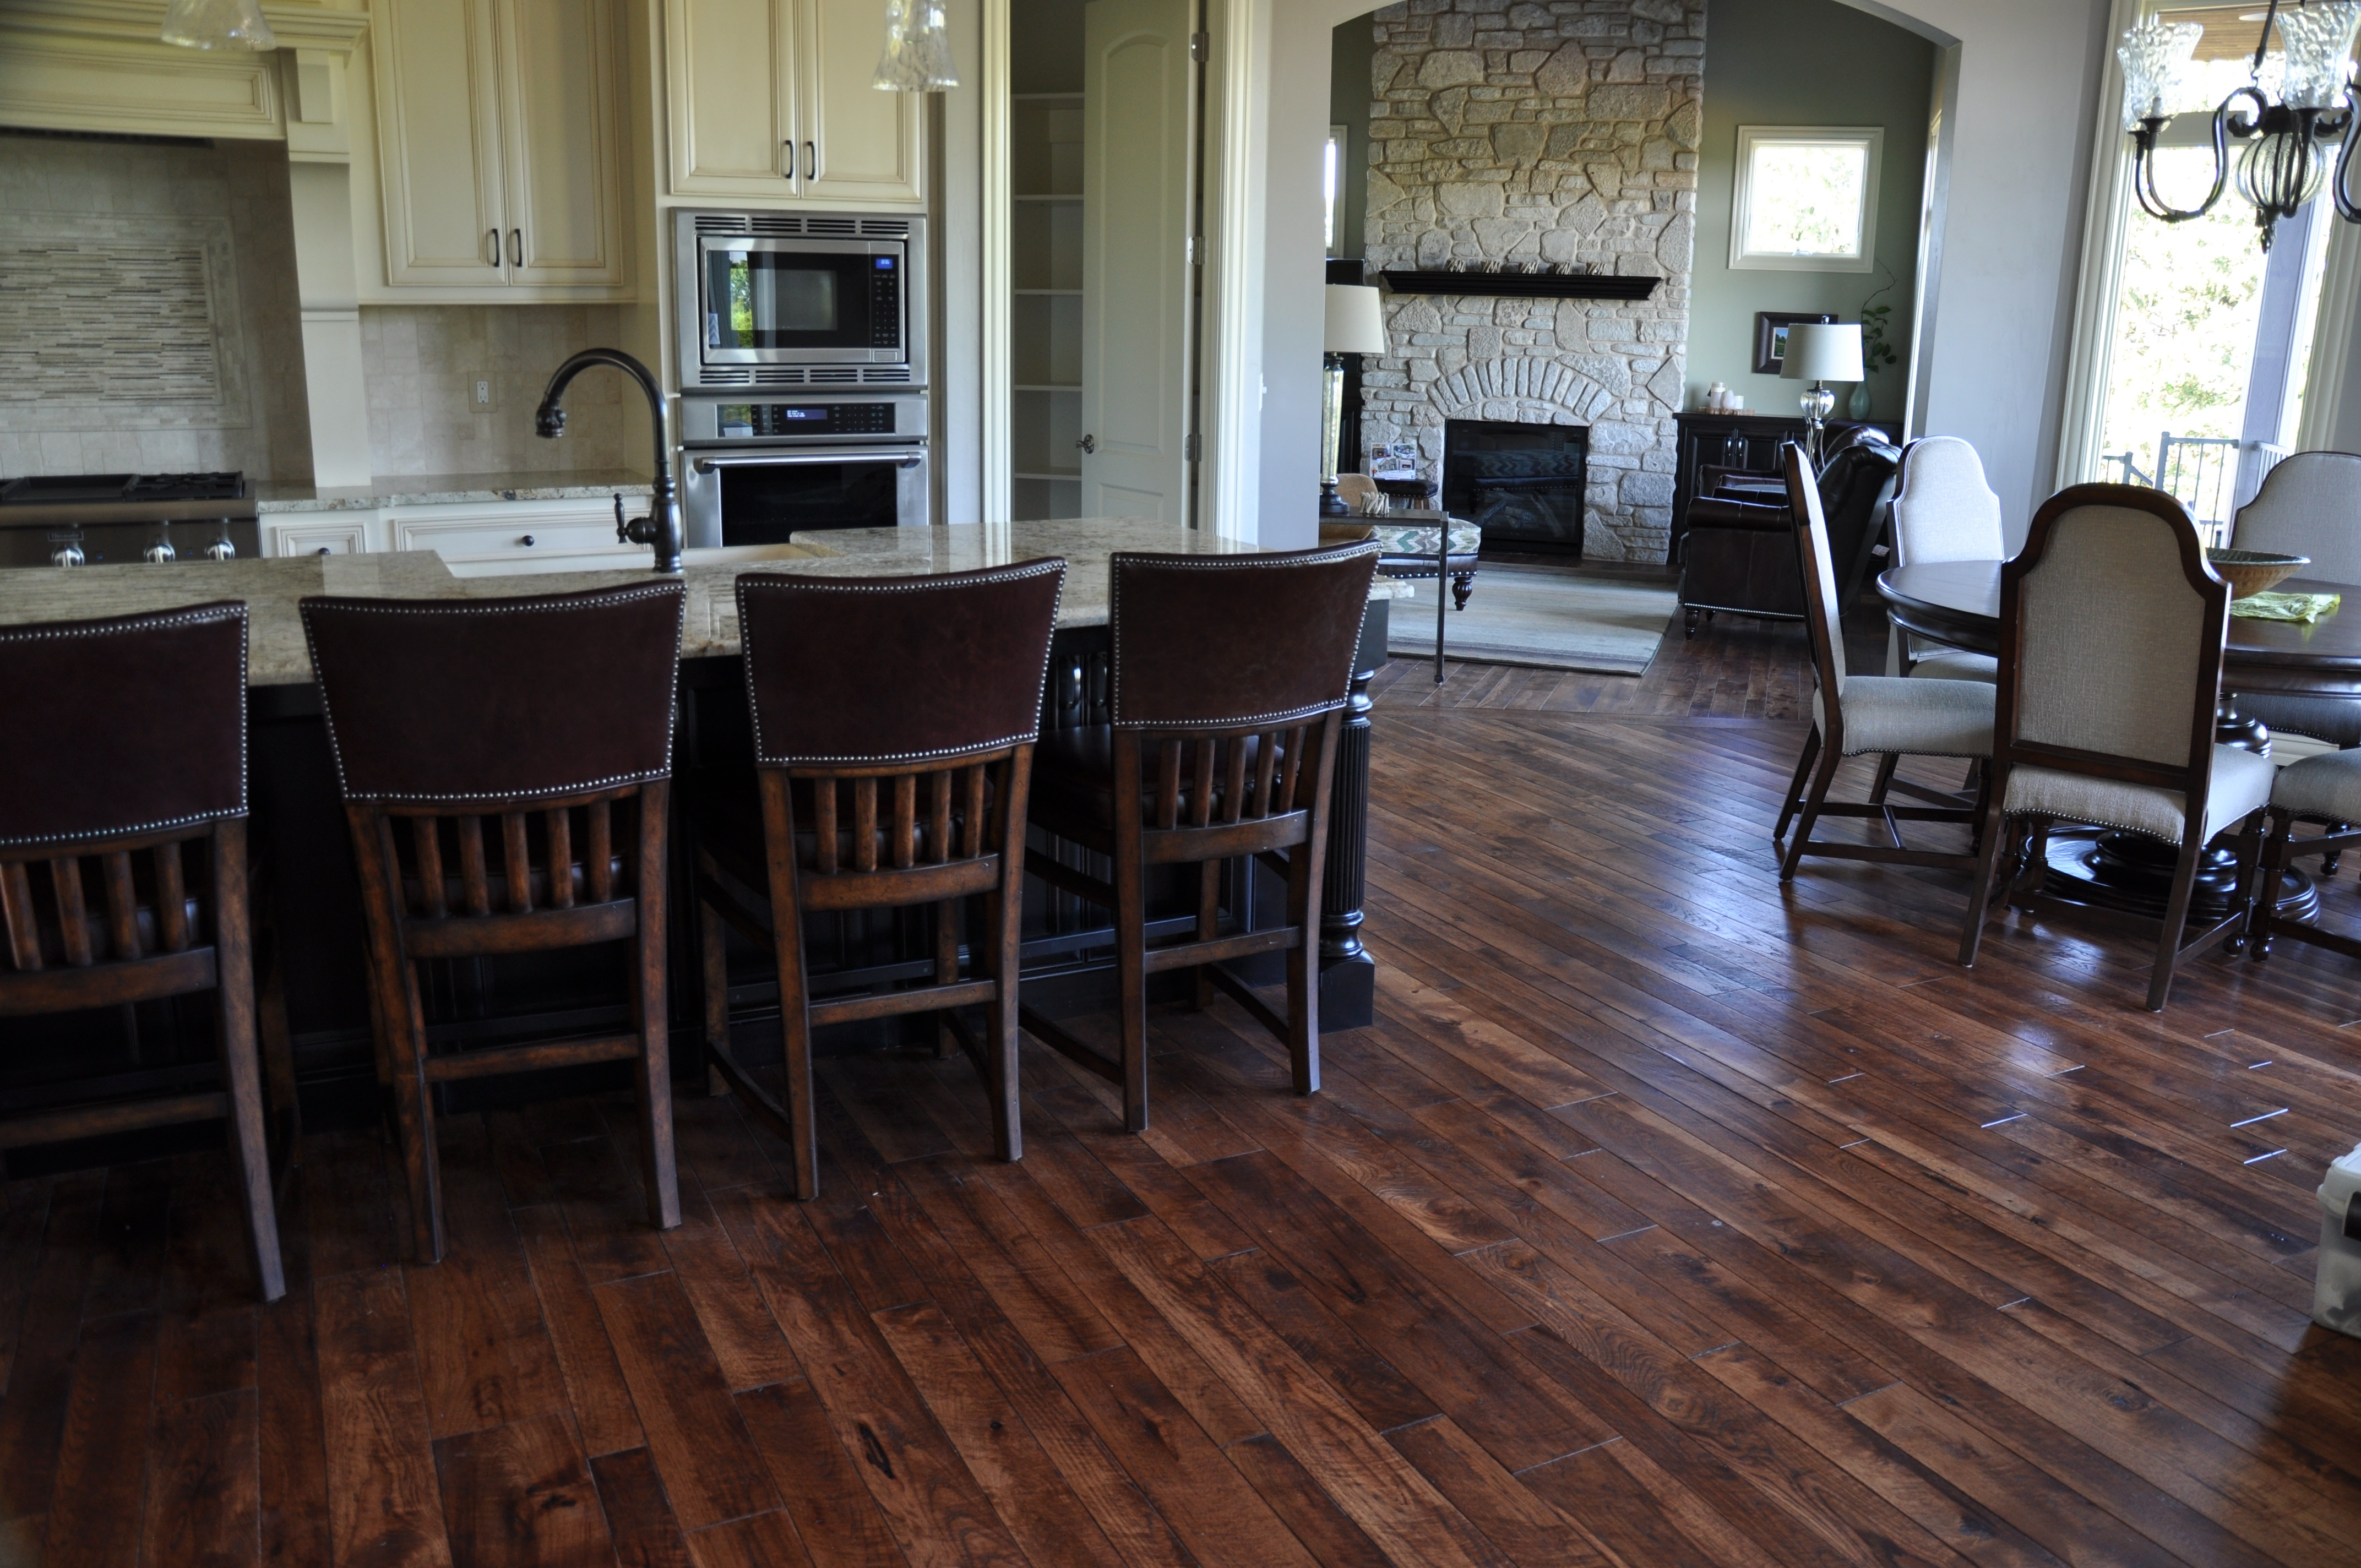 Hickory_Rustic%20Skip%20Sawn%20Mbevel_%20Stain_CG301313_2